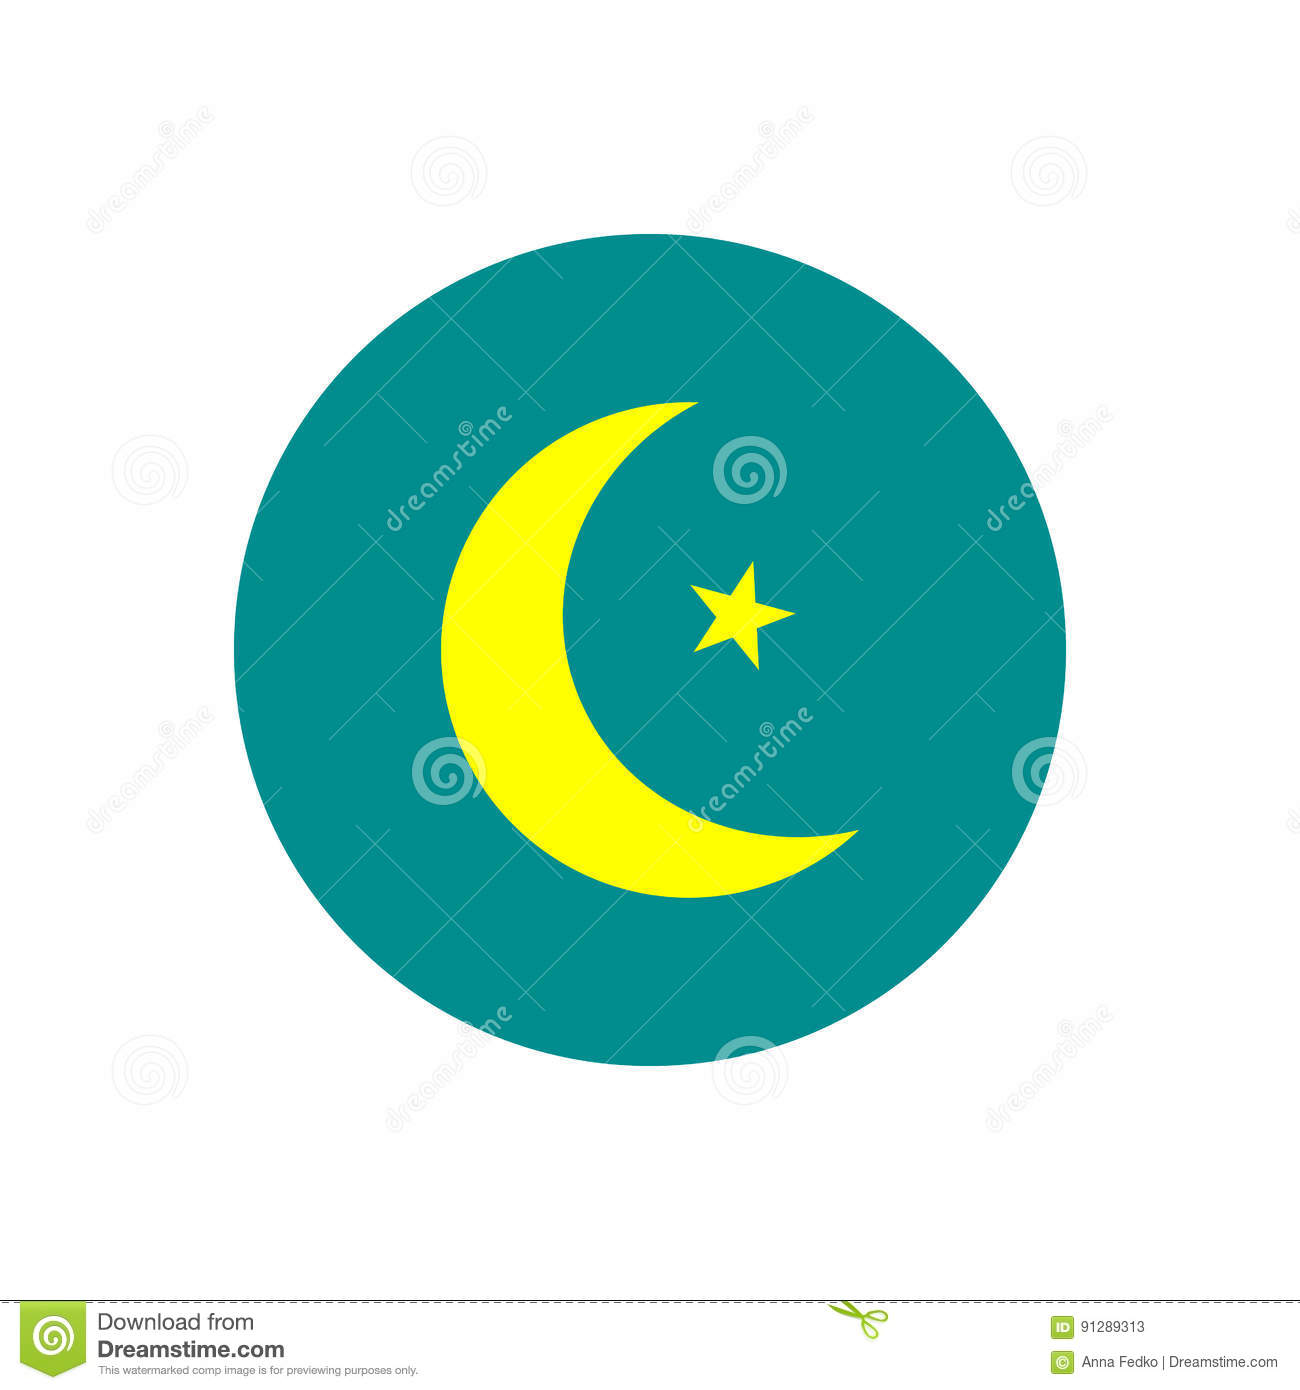 Star and crescent symbol of islam flat icon for apps and star and crescent symbol of islam flat icon for apps and websites buycottarizona Gallery